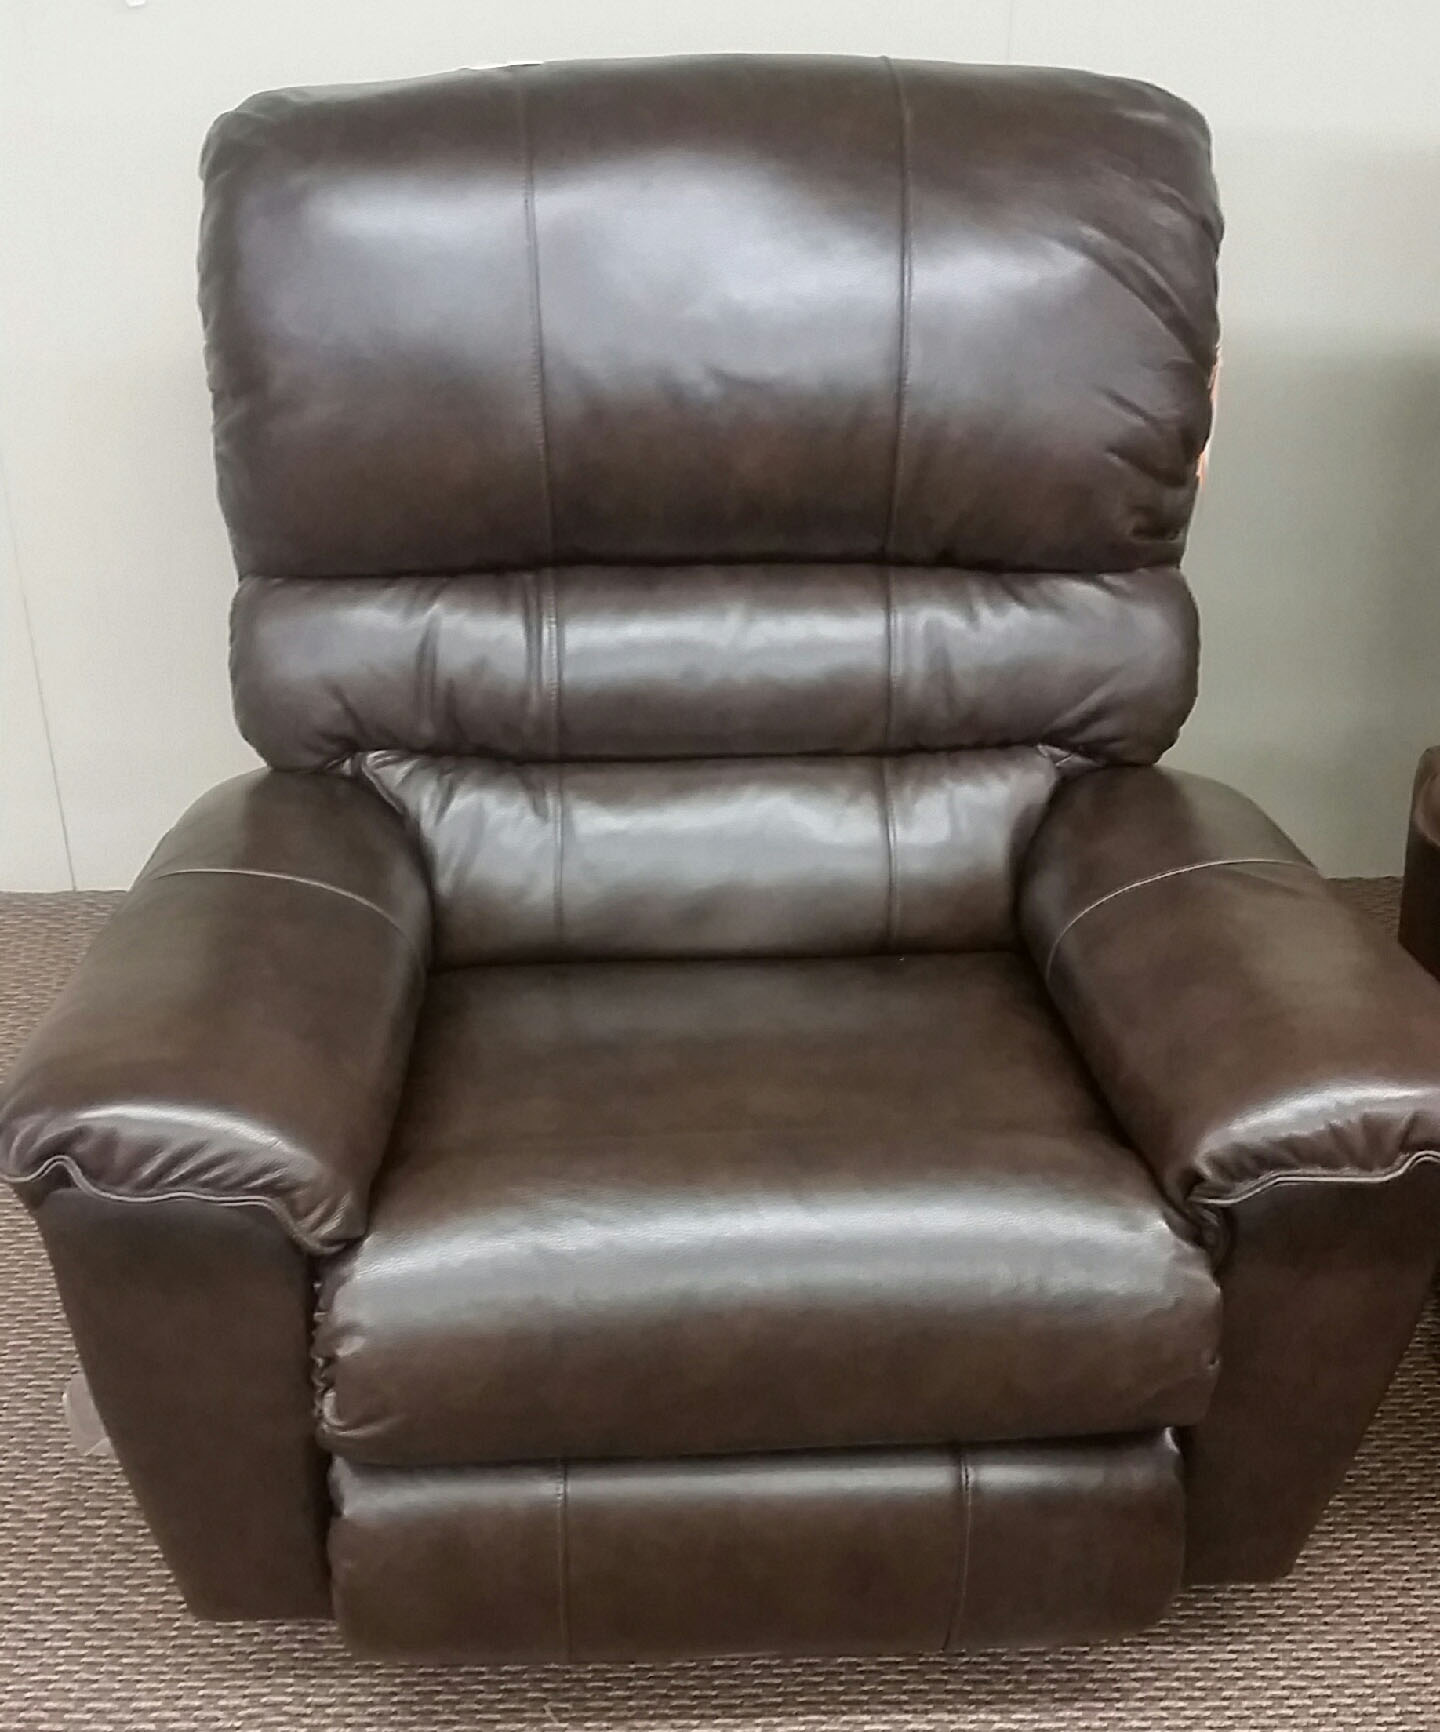 danbury all recliners products shop collections harvey ii at new haley barcalounger powell coffee stetson power recliner arrivals for